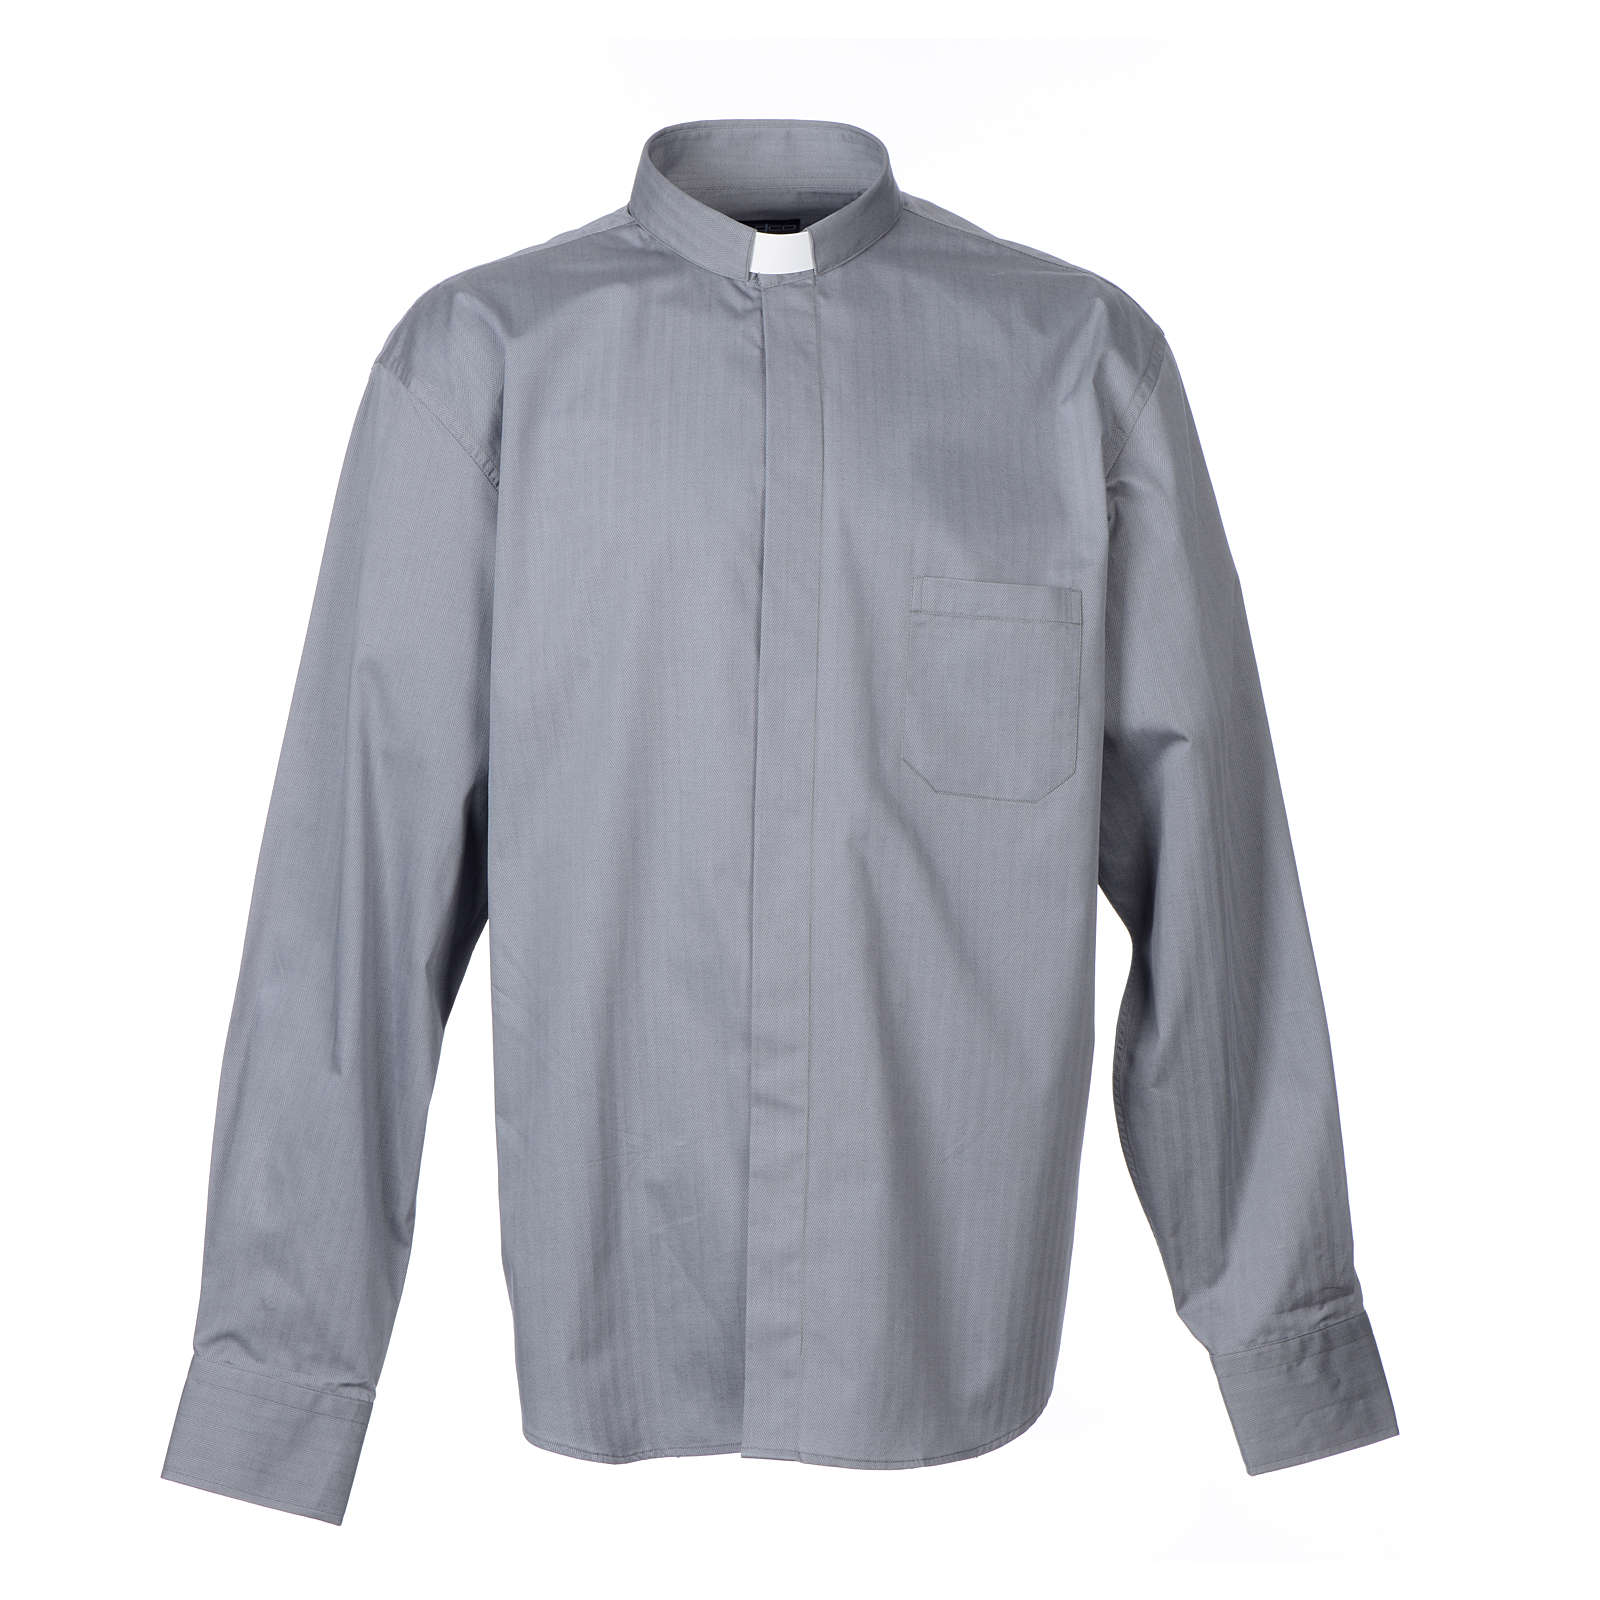 Grey clerical shirt Long sleeves easy-iron mixed herringbone cotton 4